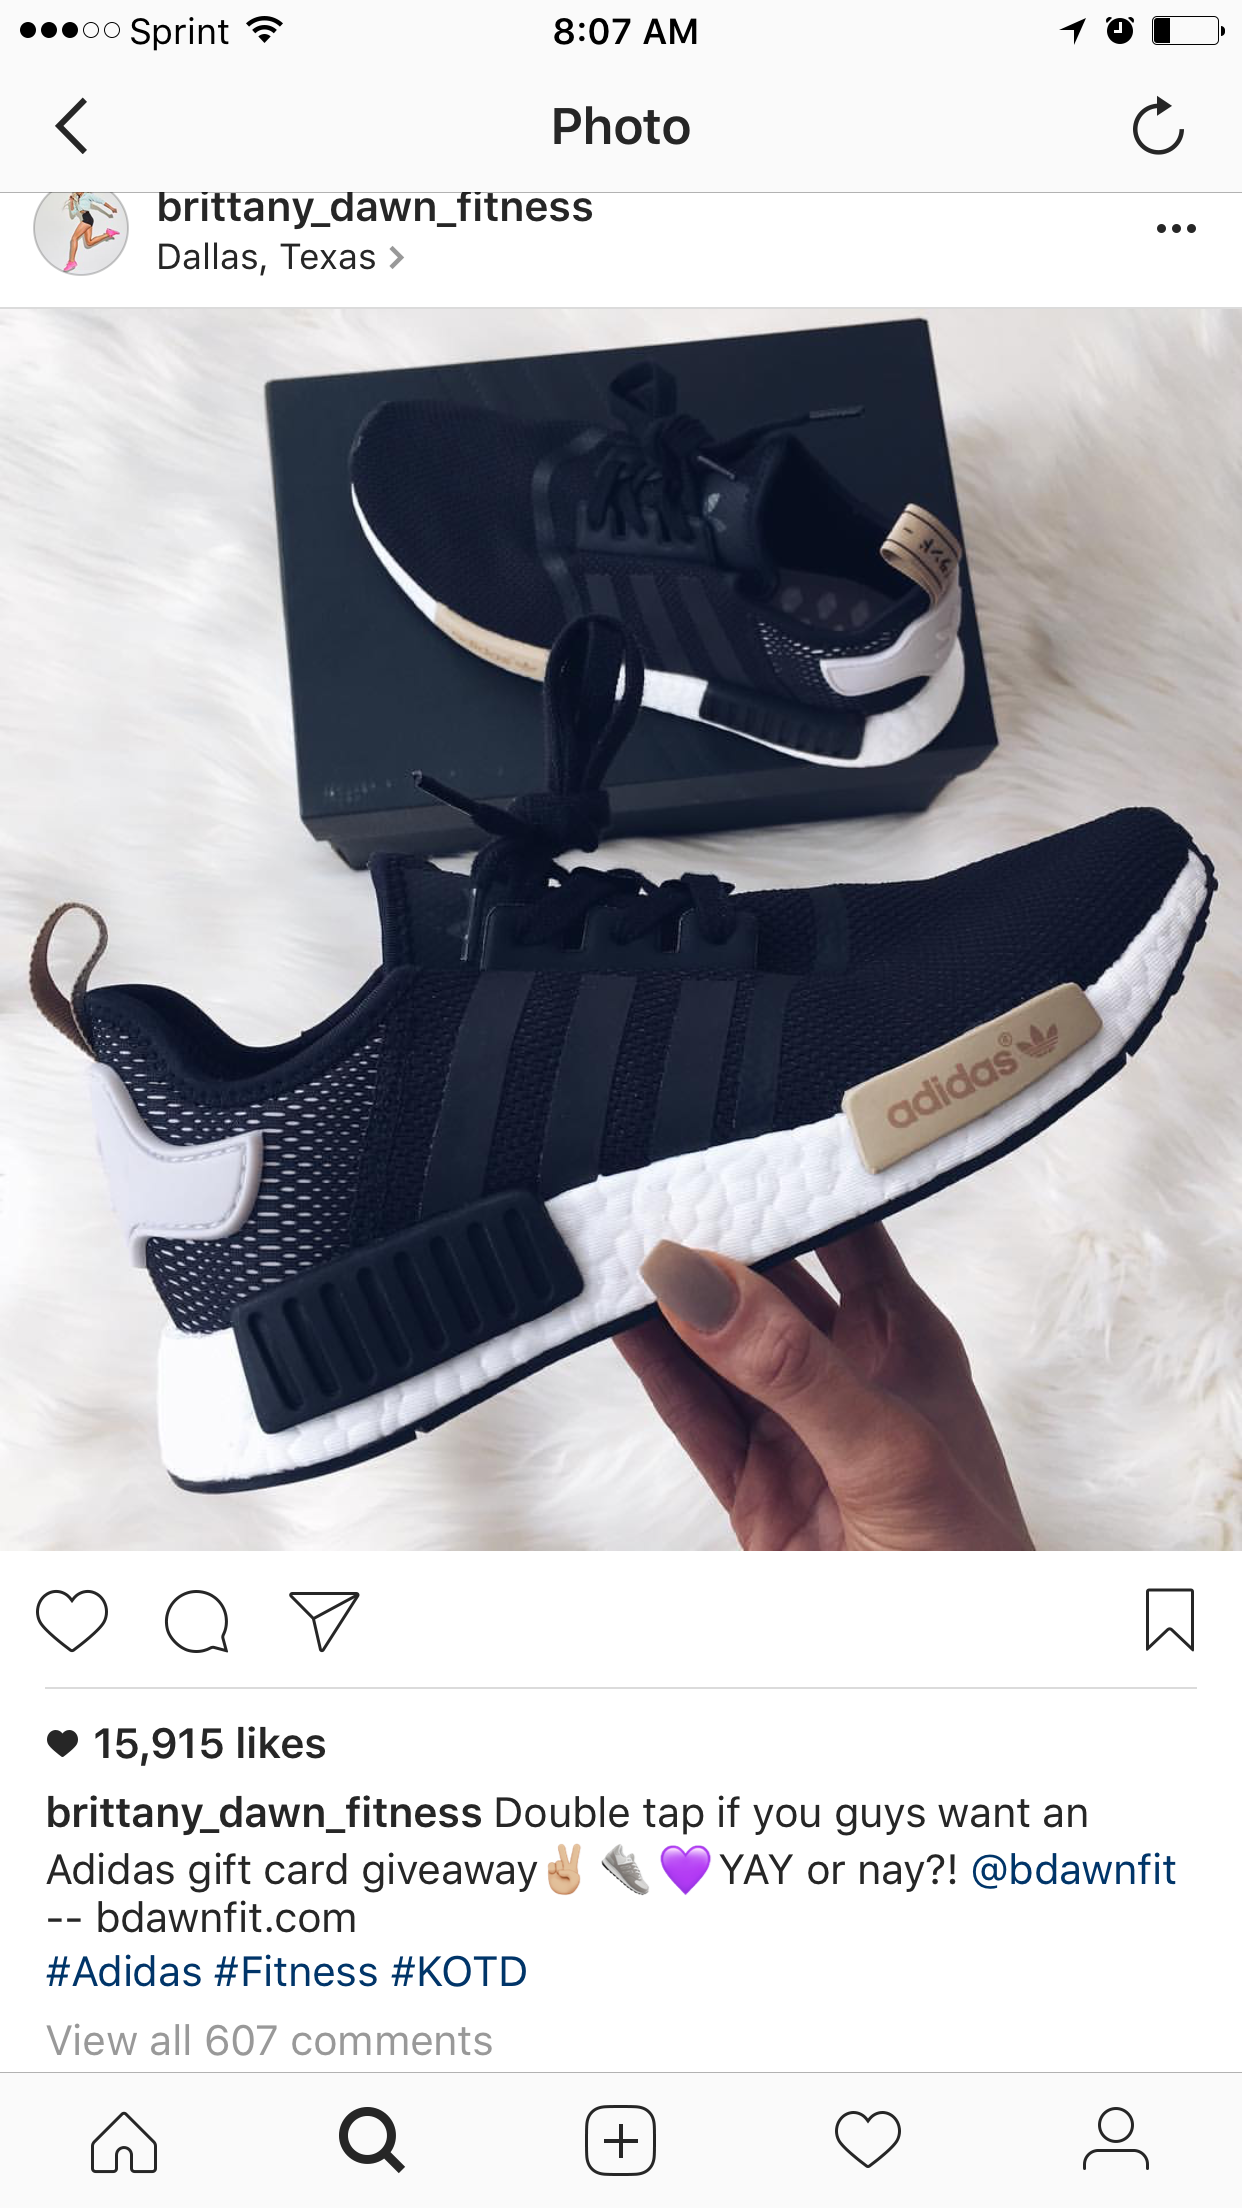 Adidas Nmds, Christmas Gifts, Birthday Gifts, Workout, Brittany Dawn  Fitness, Personal Stylist, Trainers, Stylists, Sneaker